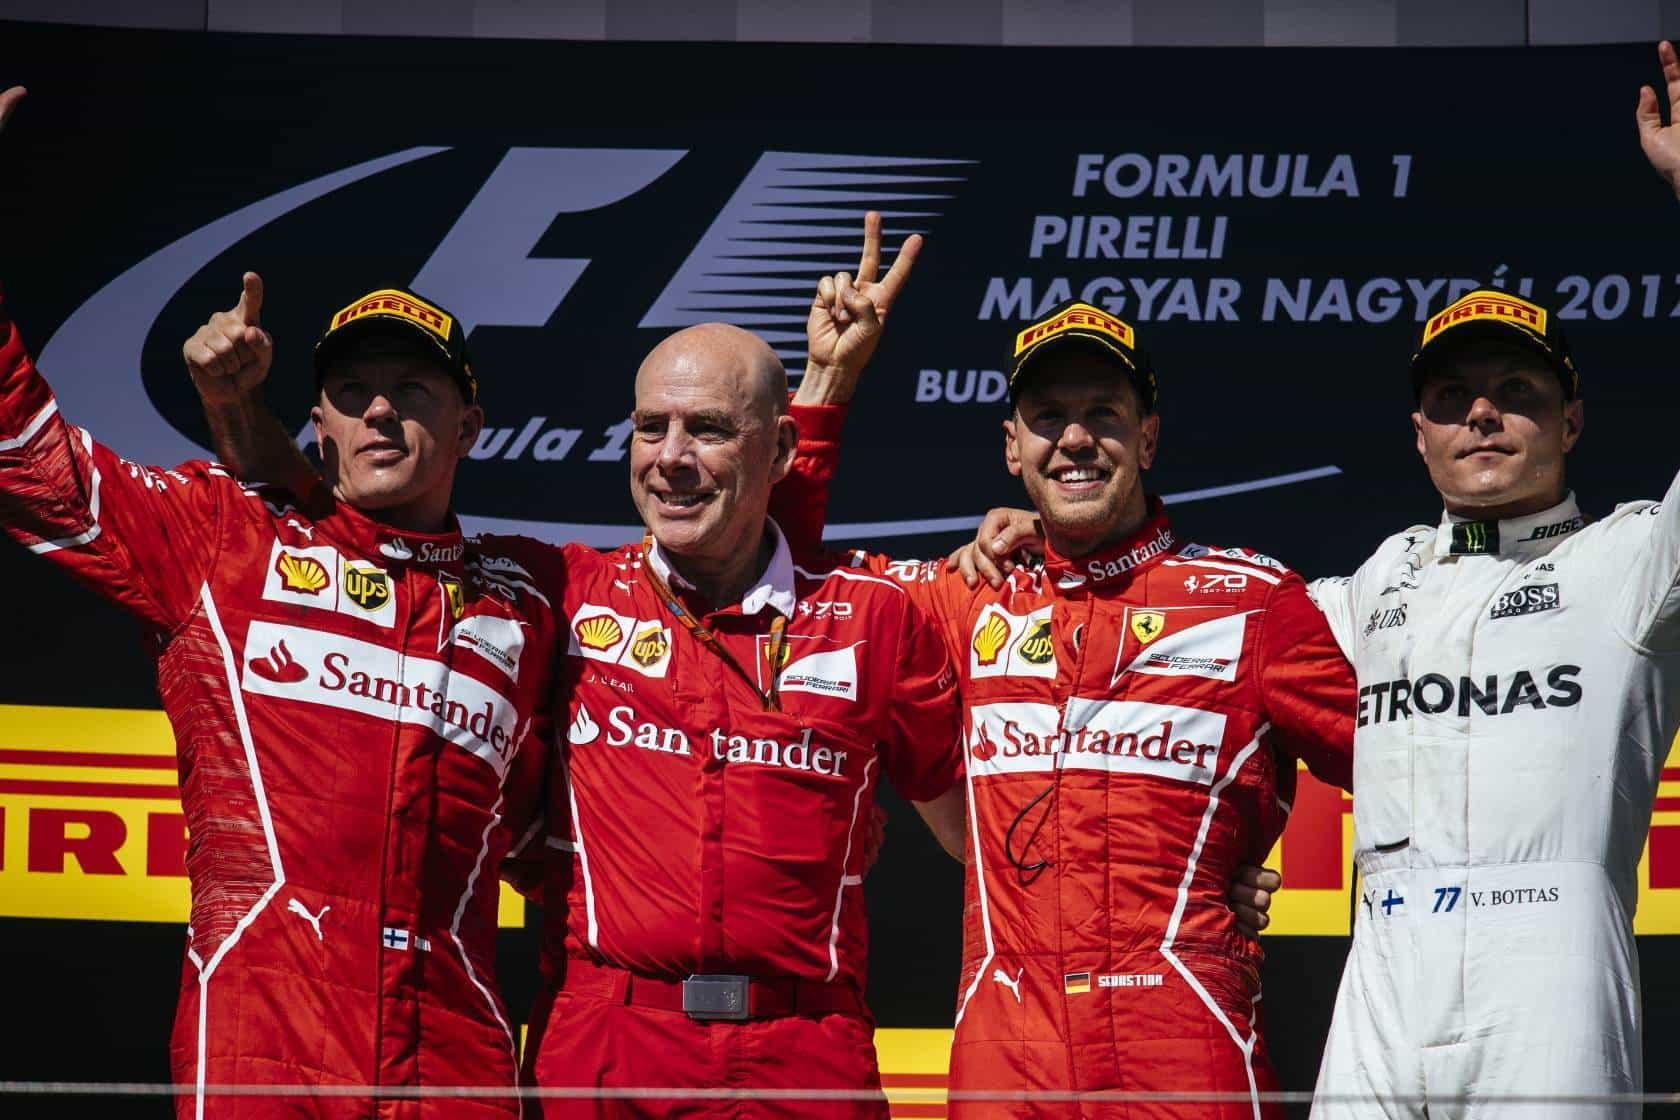 Hungarian GP F1 2017 podium close Photo Ferrari